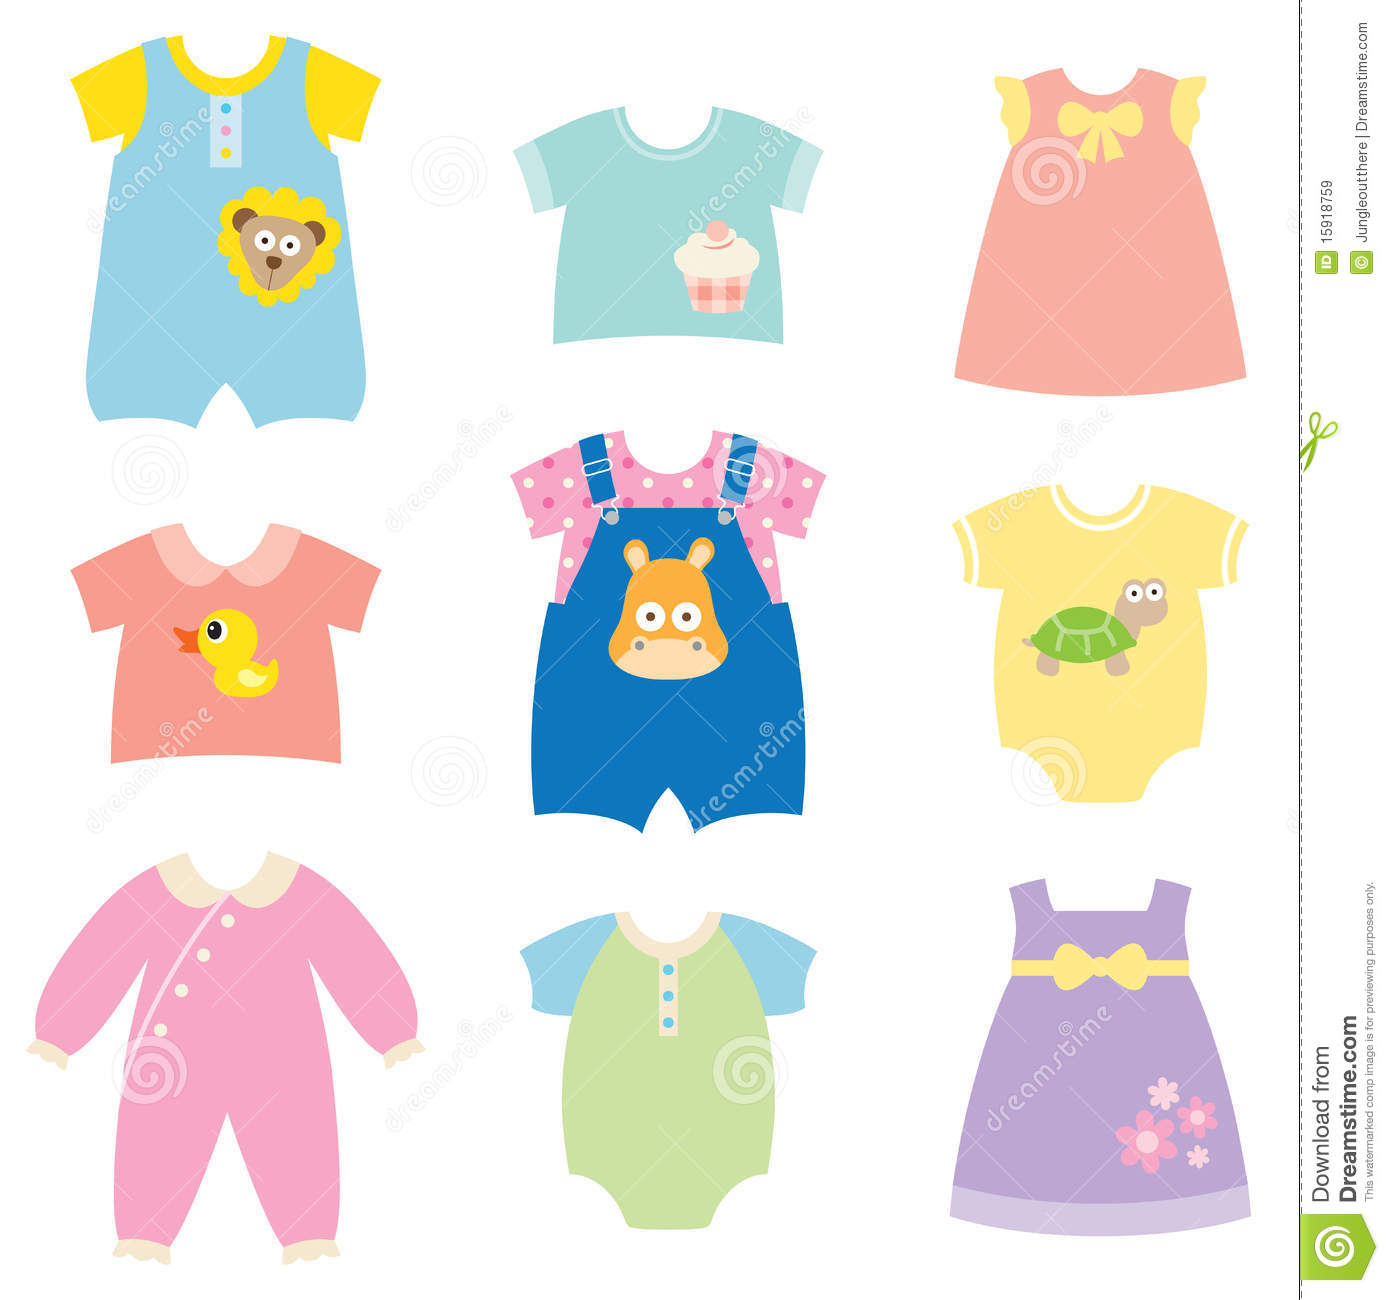 Baby Clothes Clip Art